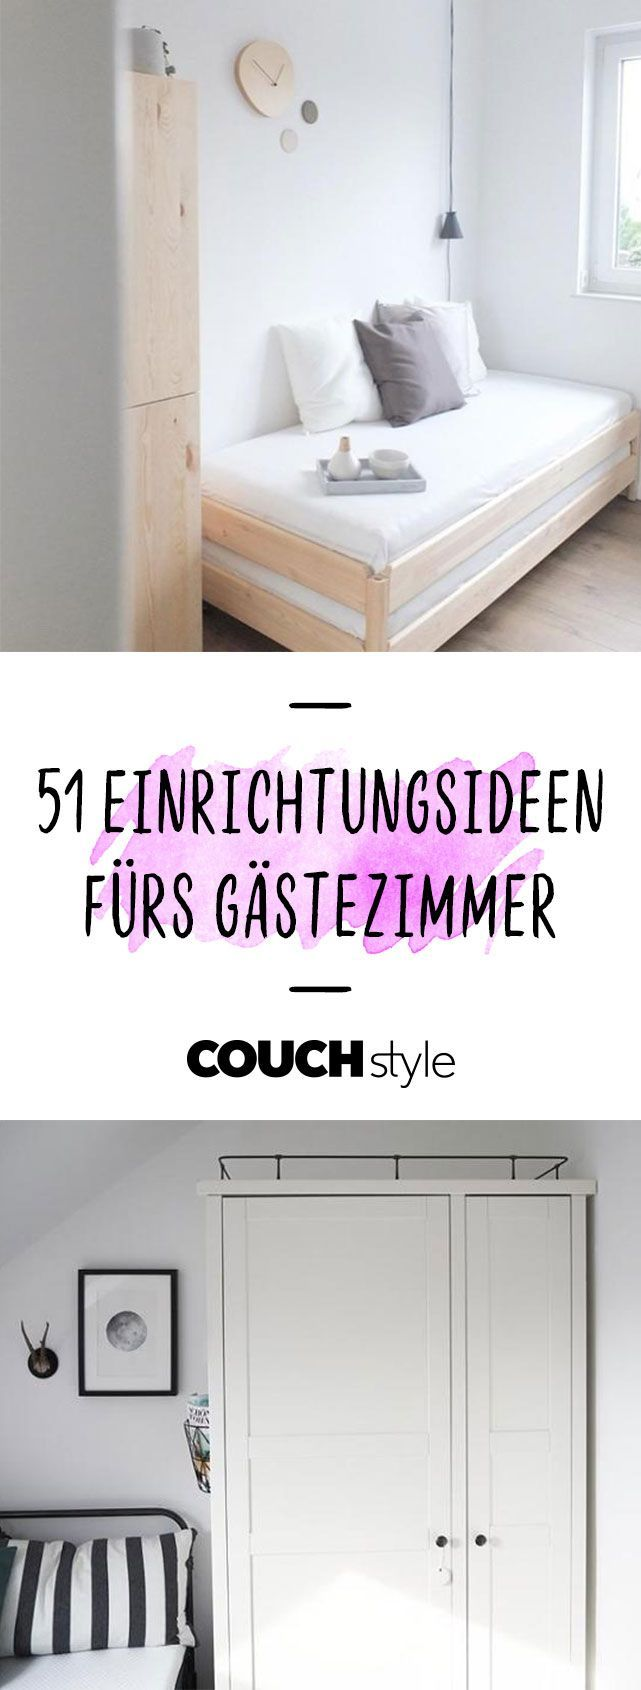 596 best Einrichtungs- & Wohnideen images on Pinterest | Bedroom ...